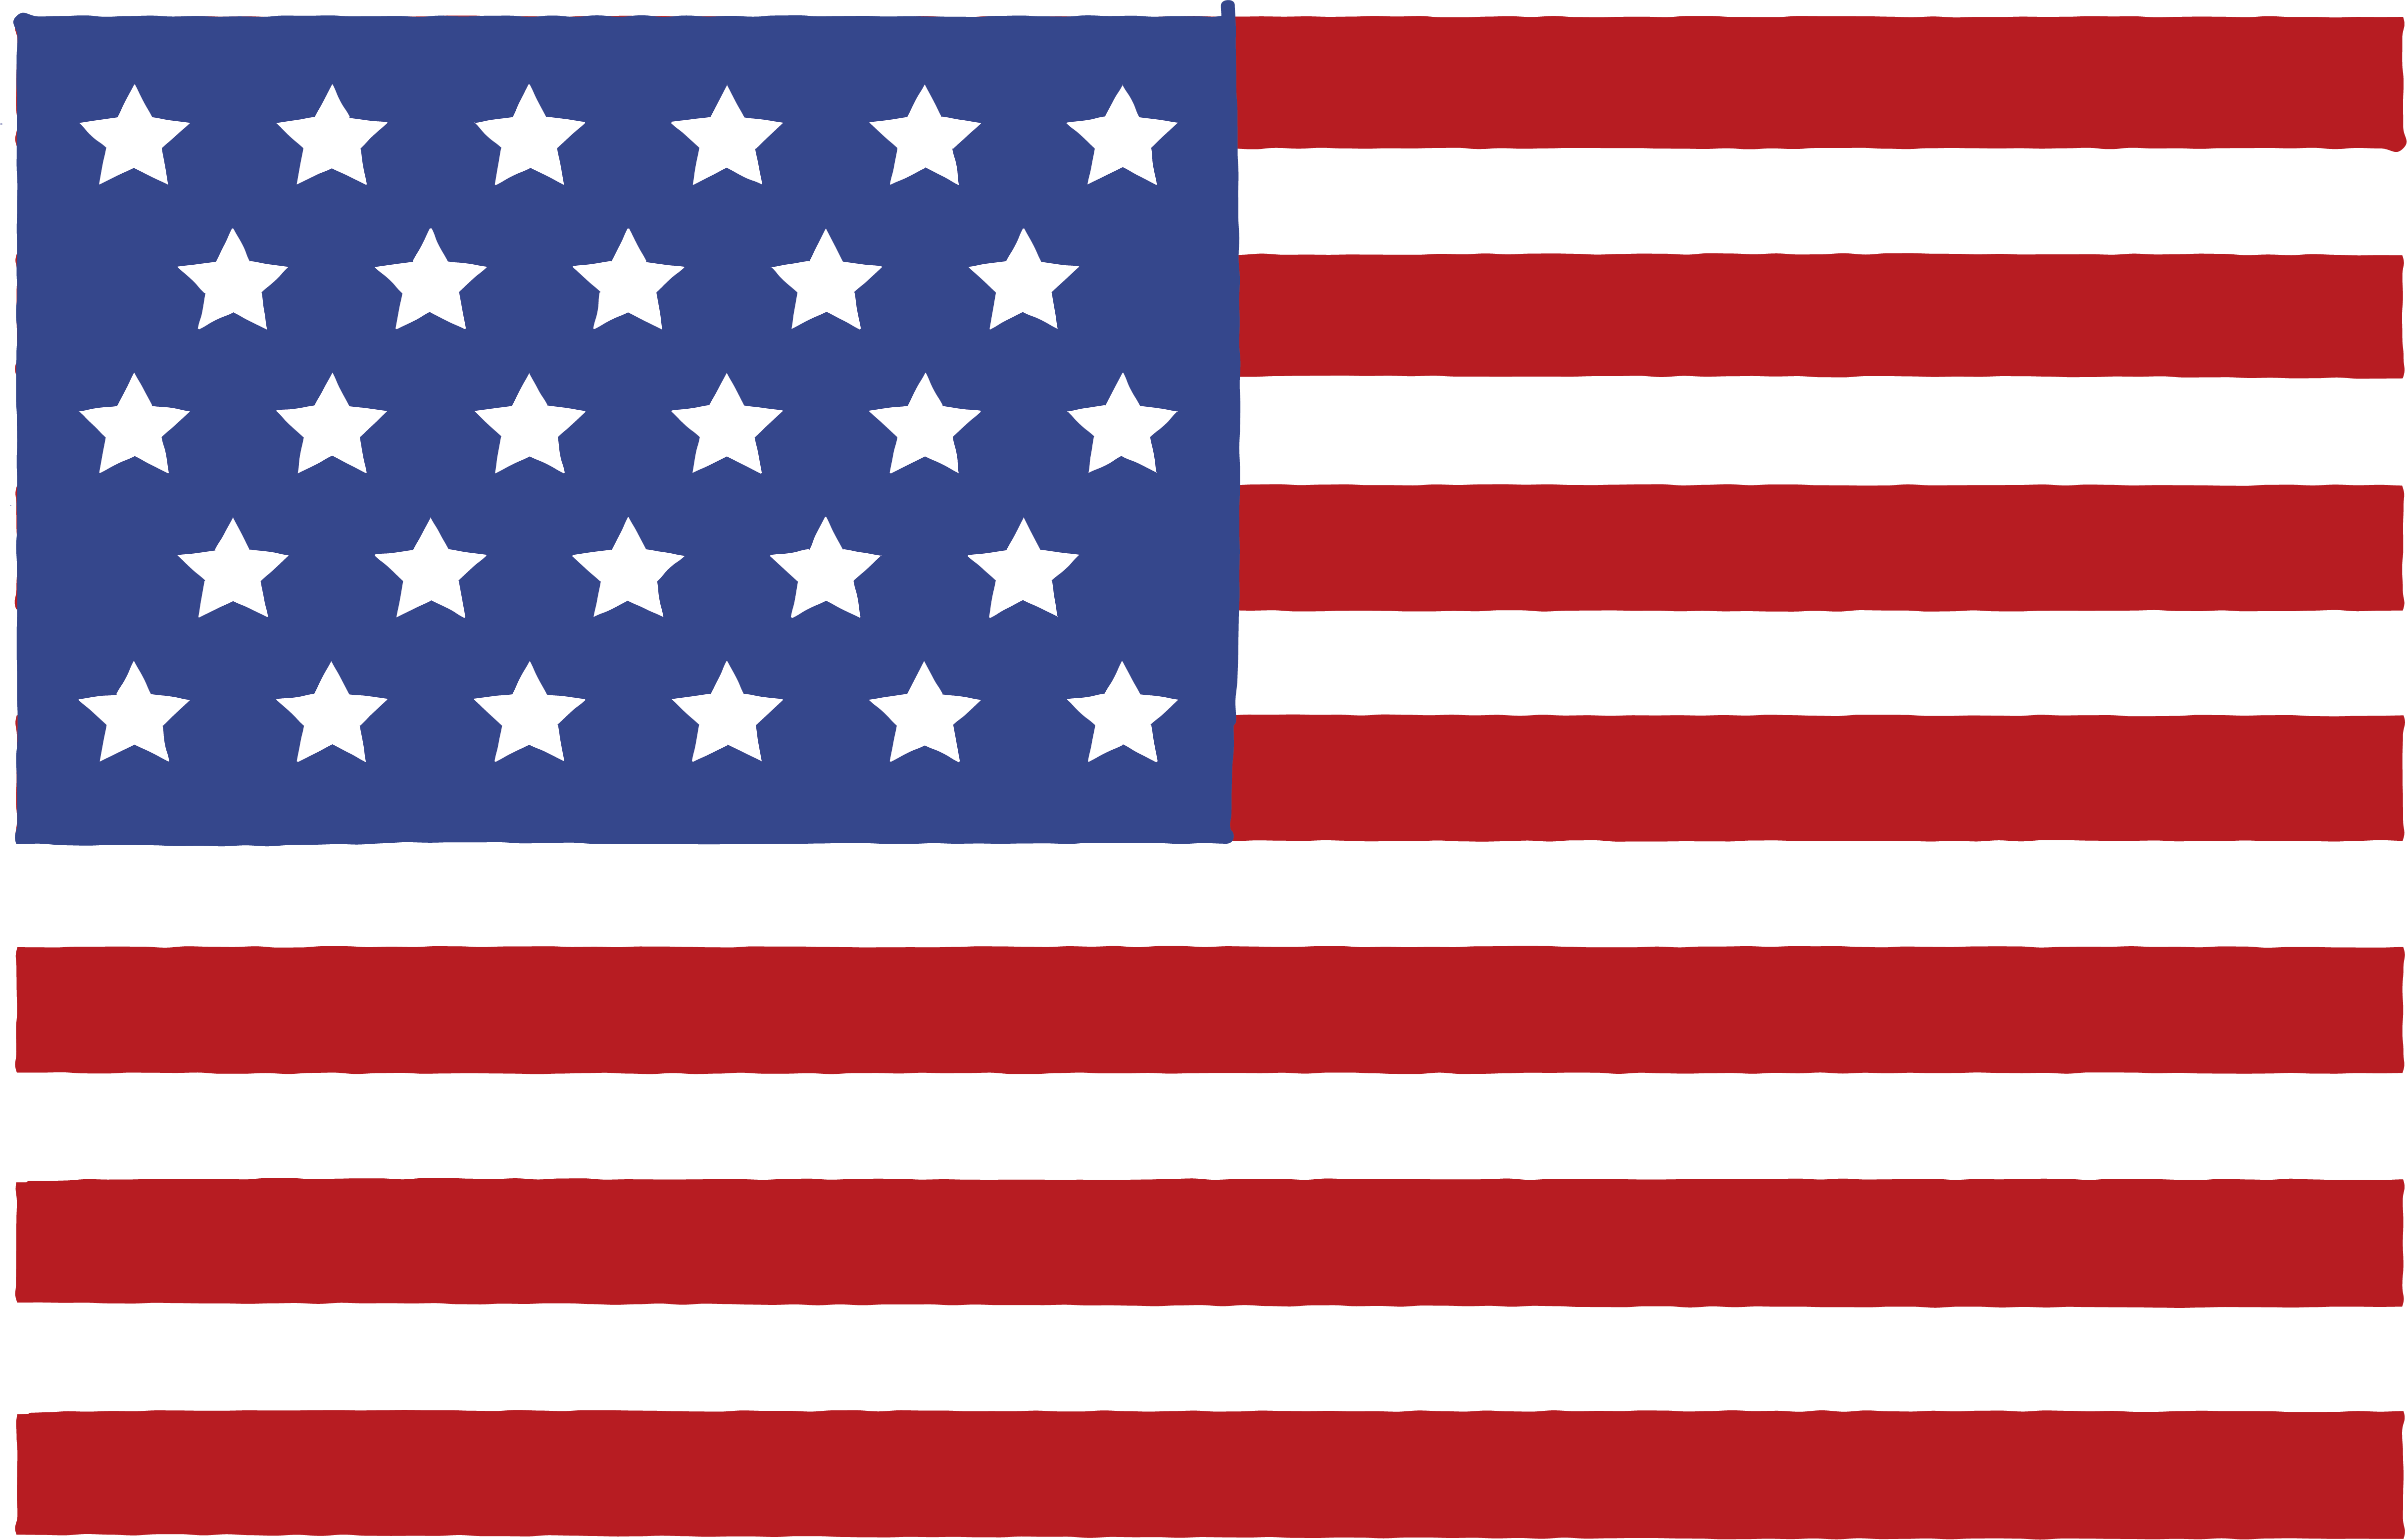 Flag of the united. Free clipart veterans day